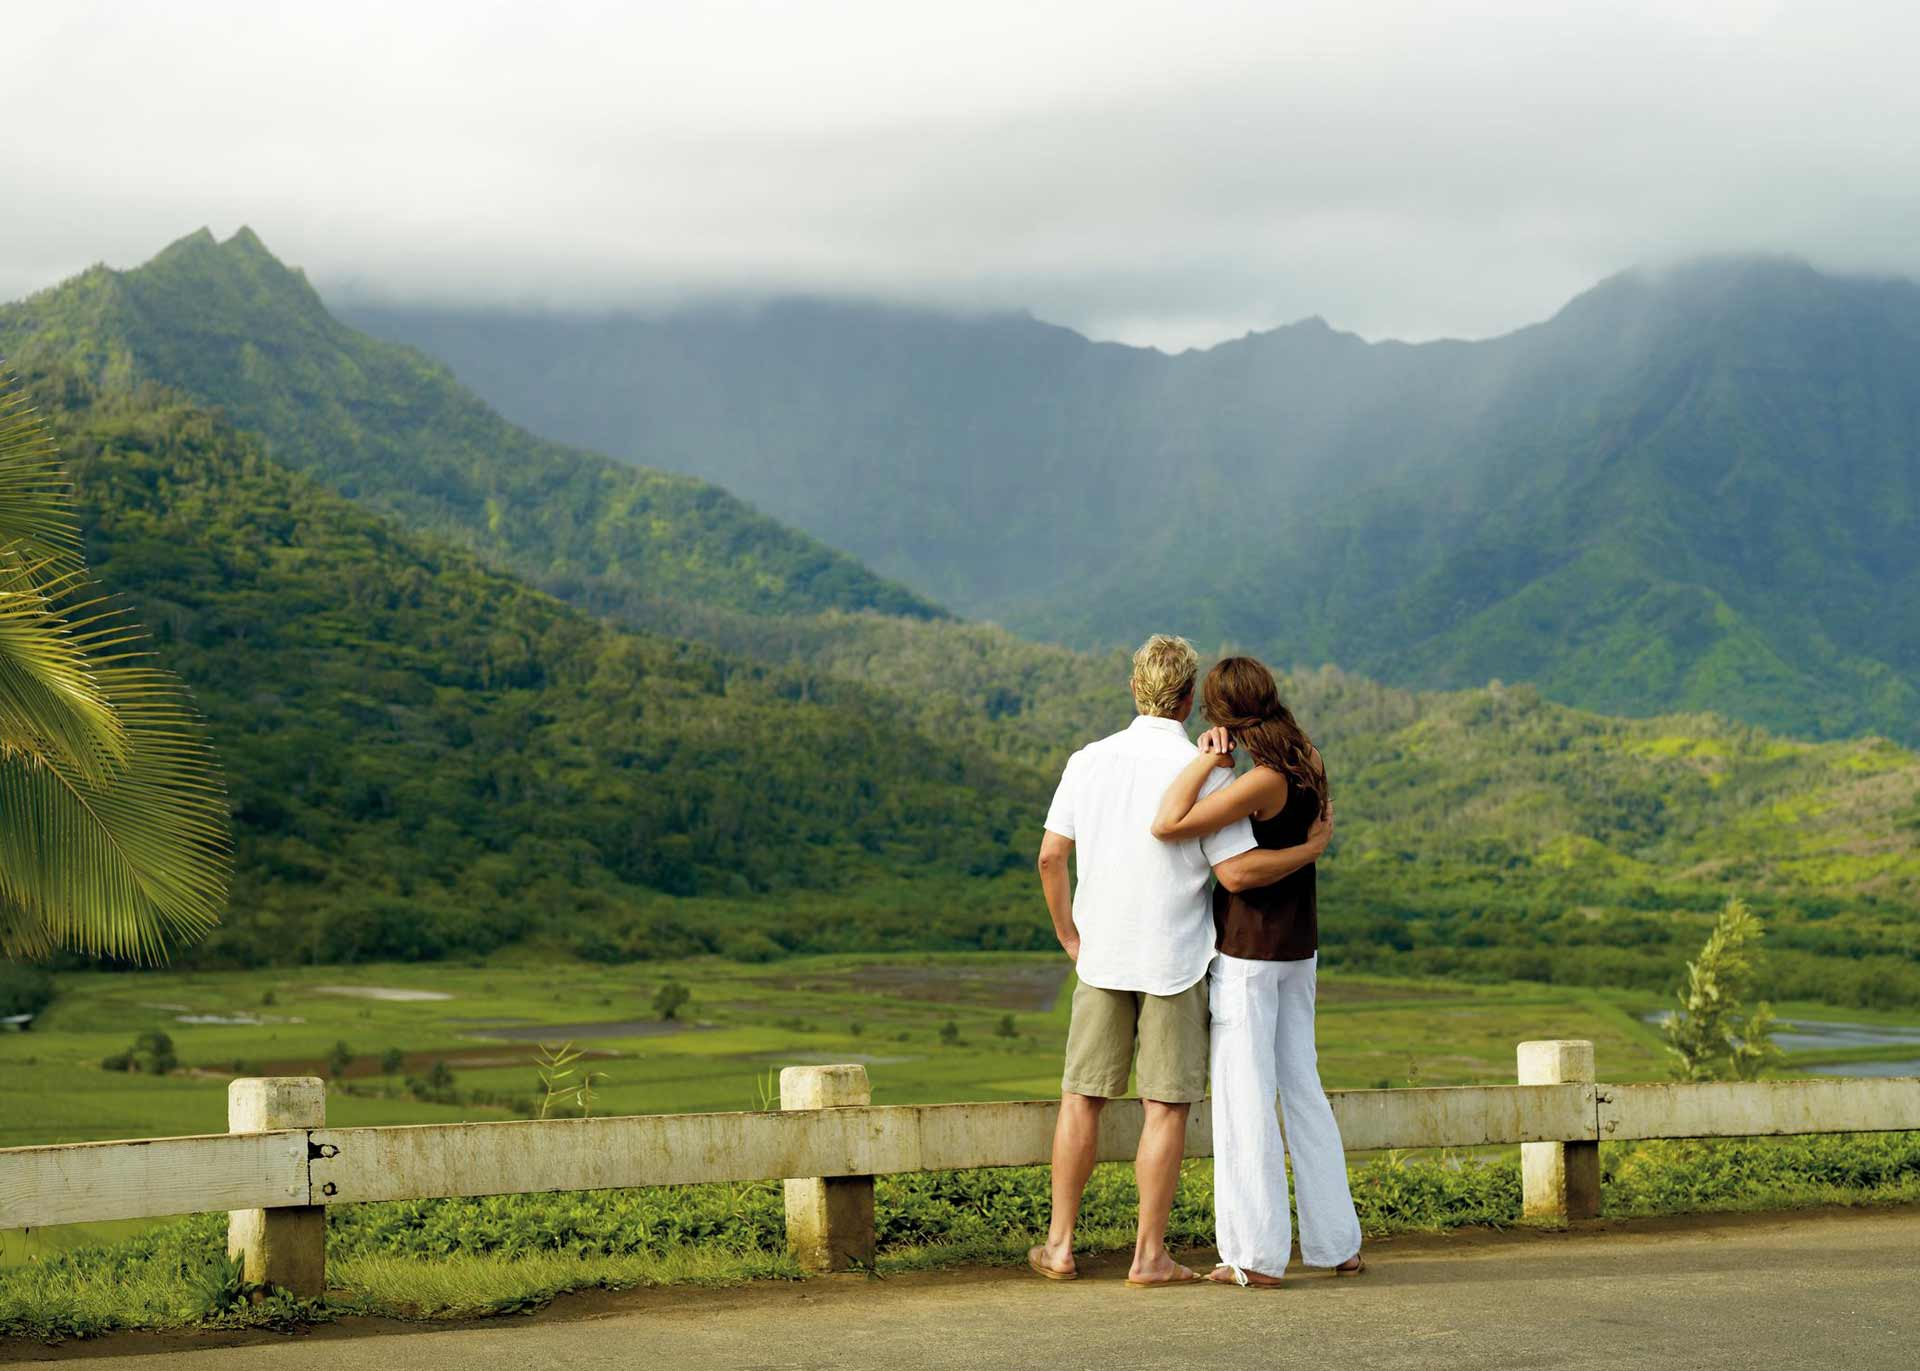 man and woman standing while looking to mountains during daytime